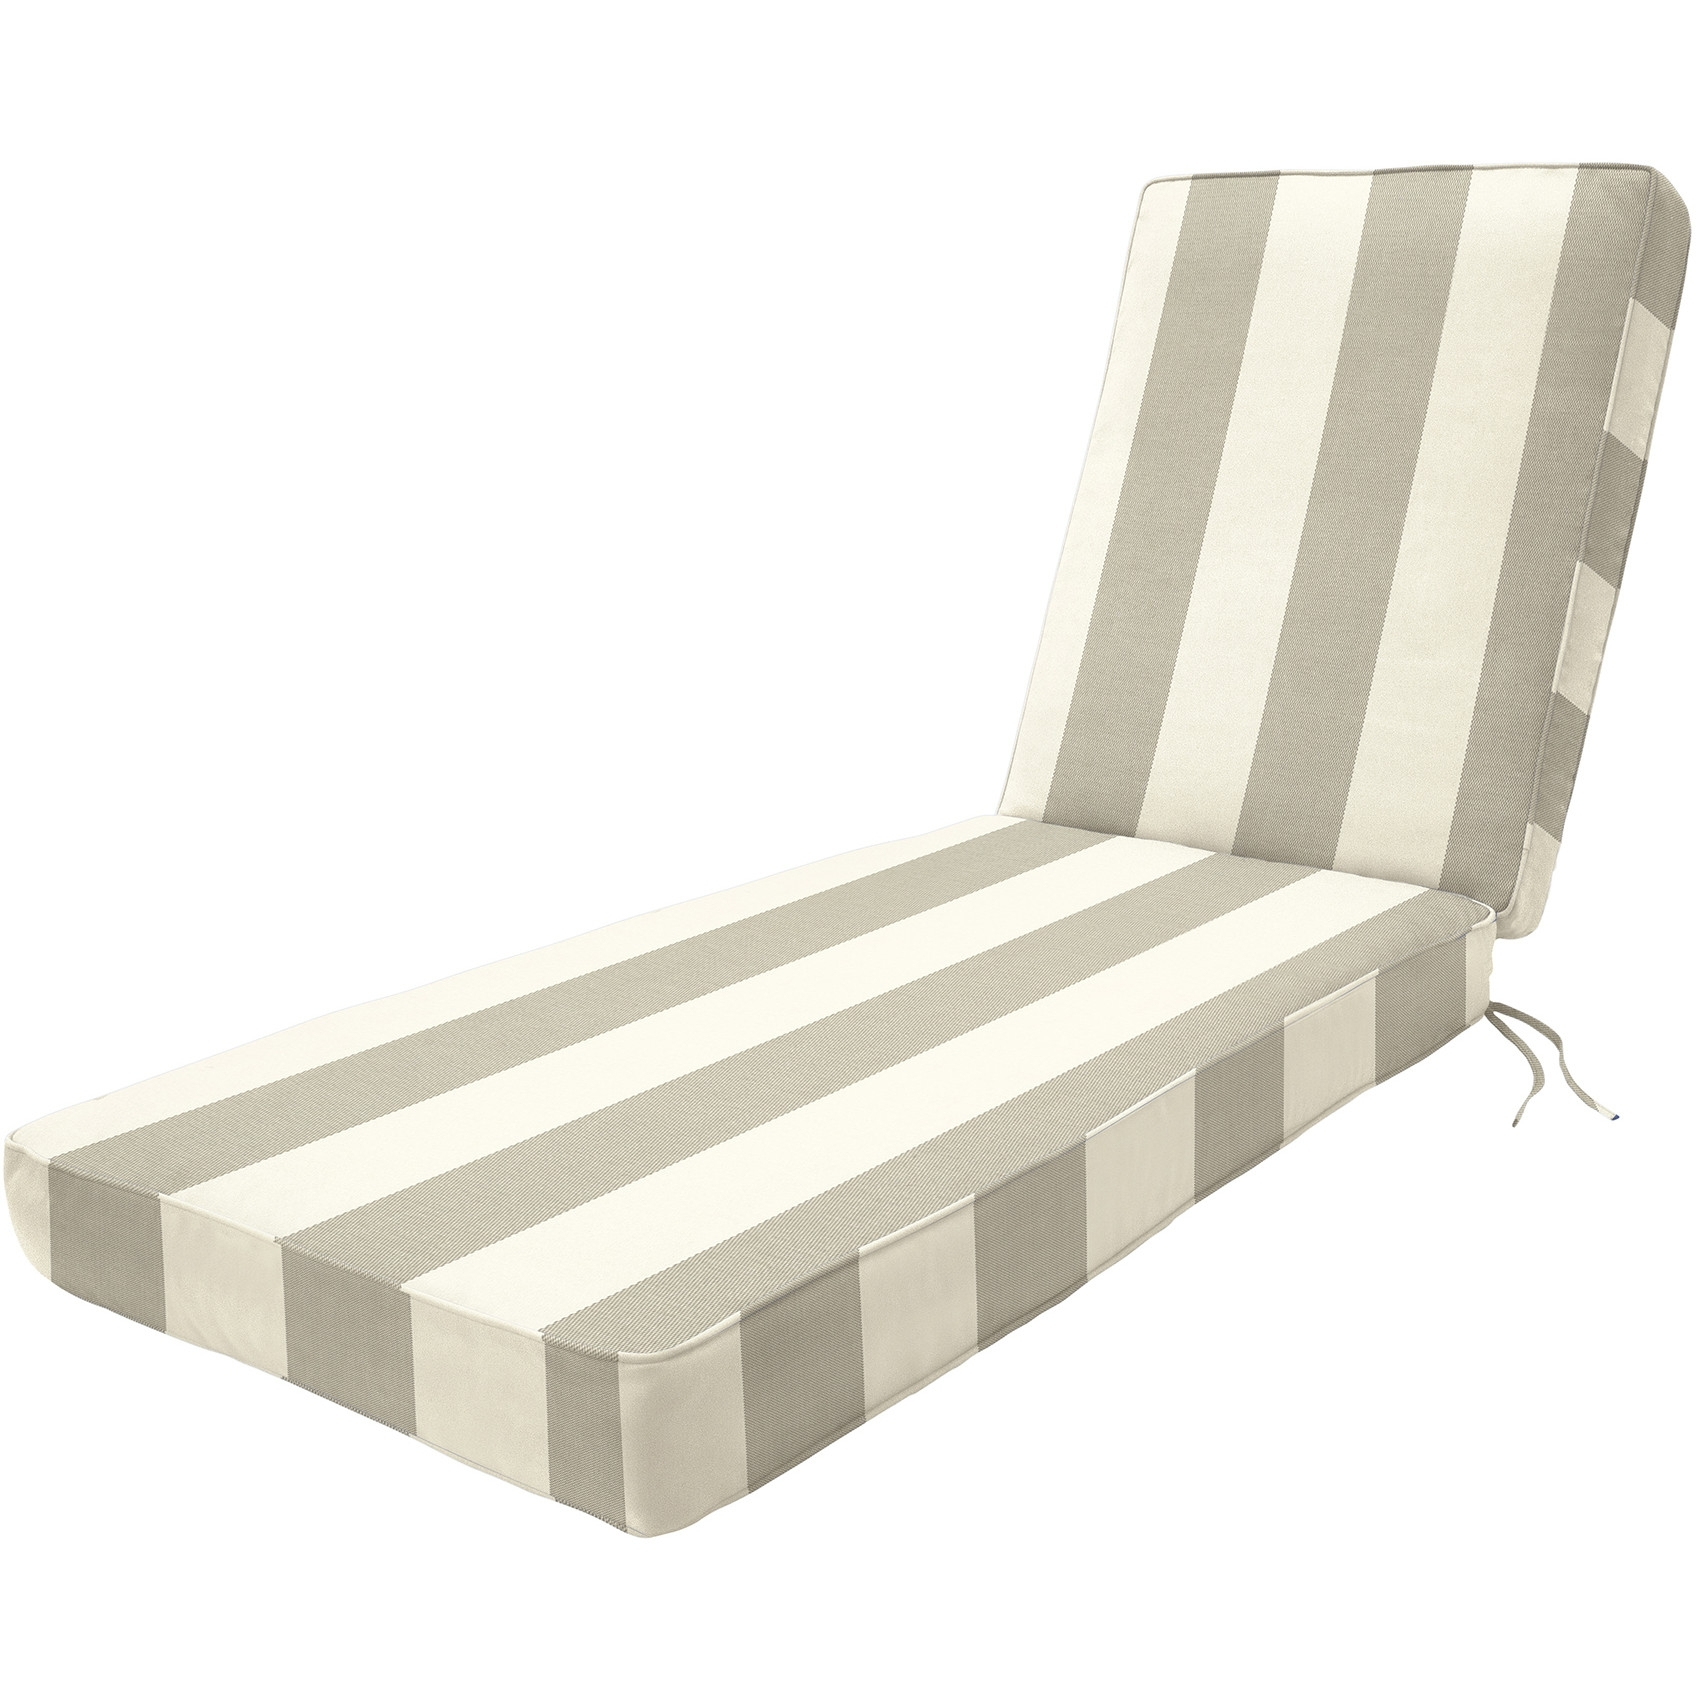 Chaise Lounge Chair Outdoor Cushions Within Widely Used Chaise Lounge Chair Outdoor Cushions • Lounge Chairs Ideas (View 3 of 15)